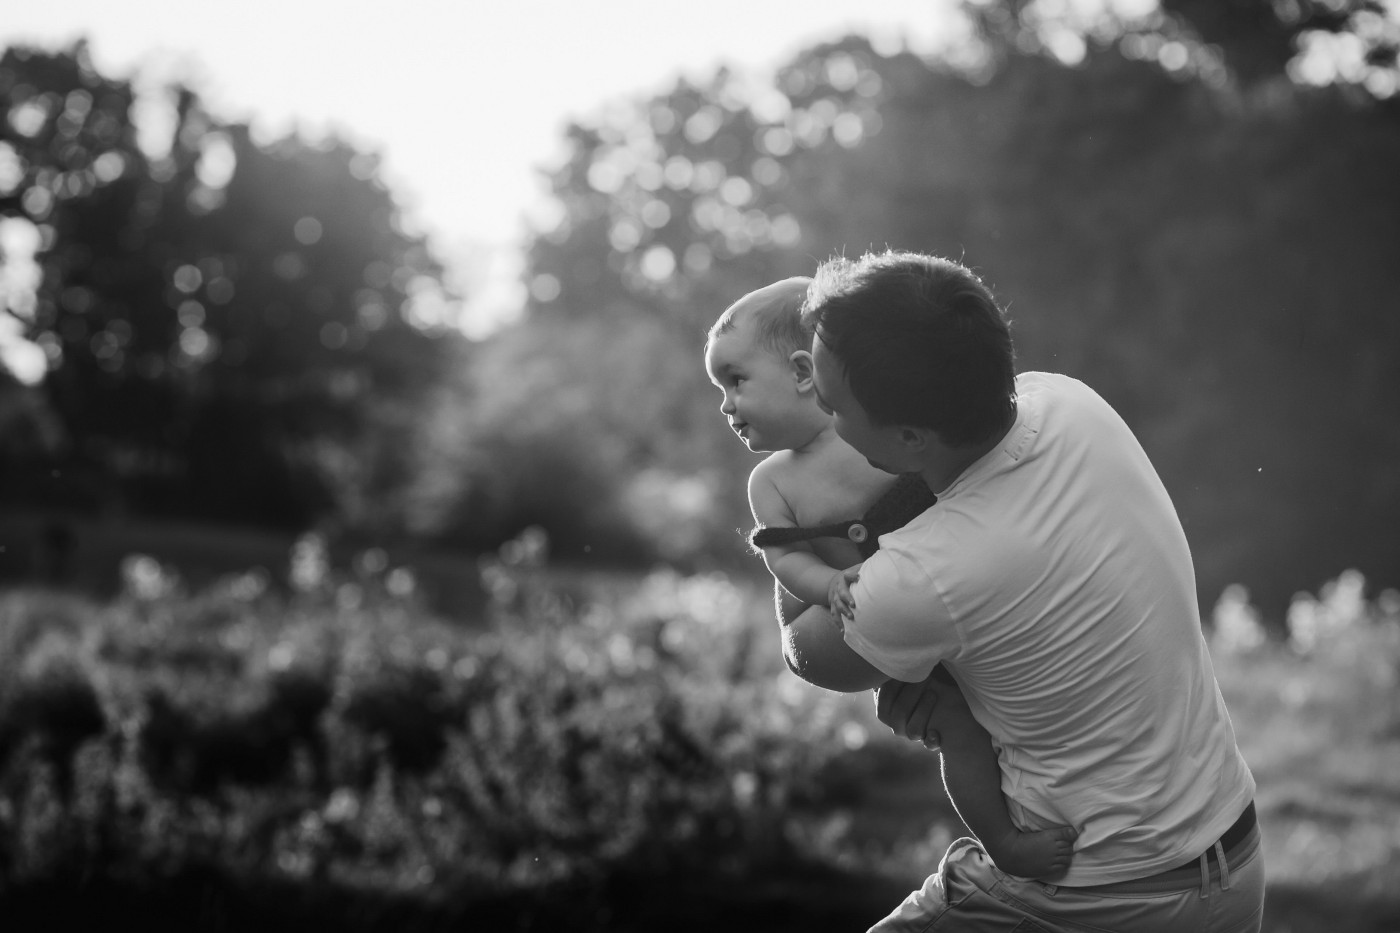 Toddler looking over father's shoulder, black and white